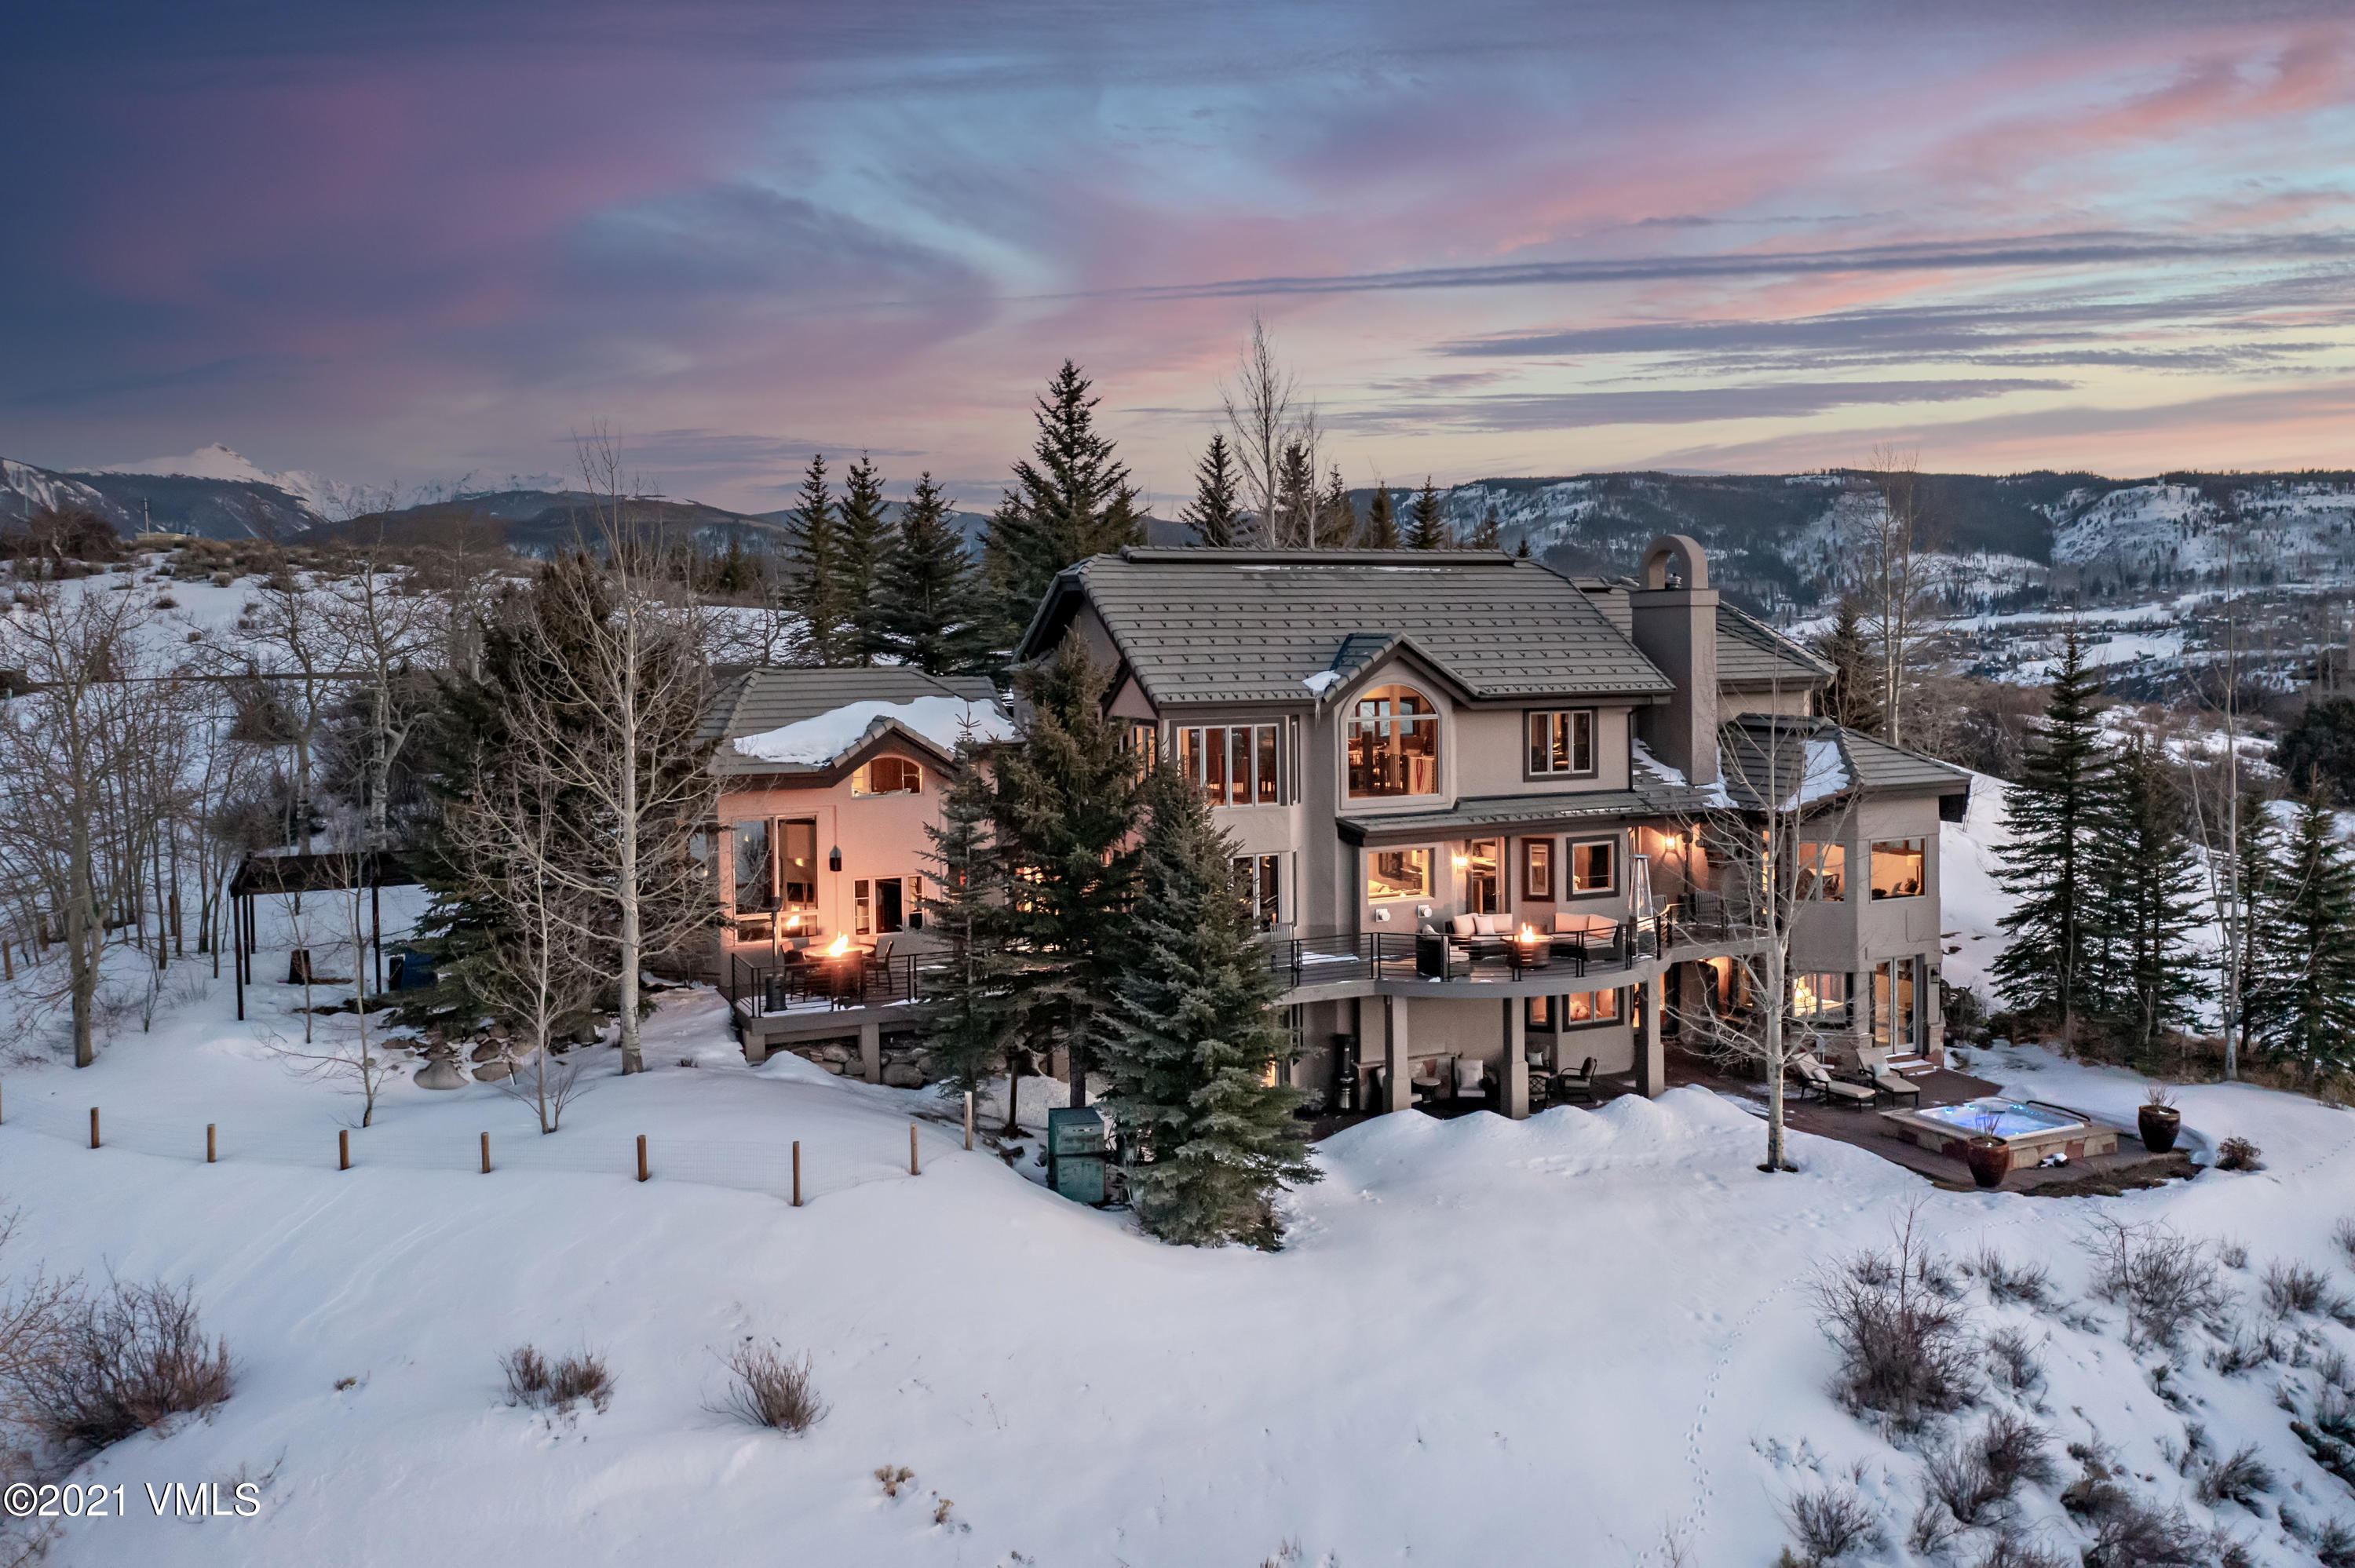 Situated atop Casteel Ridge at the end of a private cul-de-sac, this stunning residence captures truly awe inspiring views of the Vail Valley.  Guests will walk in the front door and immediately be mesmerized by the stunning views.  Walk them down the grand staircase that connects the upper level billiard and game area to the living room, dining area, bar and kitchen.   What an oasis after a day of exploring the ski mountains.  Relax in the outdoor saltwater hot tub on the lower patio or cozy up around the gas firepit on the upper wraparound deck with unspoiled views as far as the eye can see.  Complete the evening on a cinematic adventure in the media room downstairs, housing a 70'' movie theatre-style flat screen HD TV with surround sound. The property is privately situated on over 2 acres and has an expansive backyard that is great for all to enjoy.  Parents can hang out on the enormous new deck enjoying a glass of wine while overlooking the nice flat grass yard below where the kids can throw a ball for the dogs.  Enjoy the extraordinary meandering gardens that wrap around the home creating gorgeous flowers that bloom from April through October.  This stylish and scenic mountain residence has been renovated and interior designed in a mountain modern aesthetic to create a captivating and comforting setting.  The main level features a custom-built quartz double fireplace in the living room, an expansive great room with soaring cathedral ceilings and both formal and informal entertainment and dining spaces.  This home has a defiant fun factor but can also be a serene space when friends and family are not in residence.  Enjoy a game of billiards or get creative with craft cocktails while friends are ponied up to the full size bar.  The bar is on the main level next to the kitchen and living room so that it is frequently utilized versus being down in the family room and rarely used.  The media room is the perfect nook to take..  mls.CordilleraDivideLuxury. ..in a grea